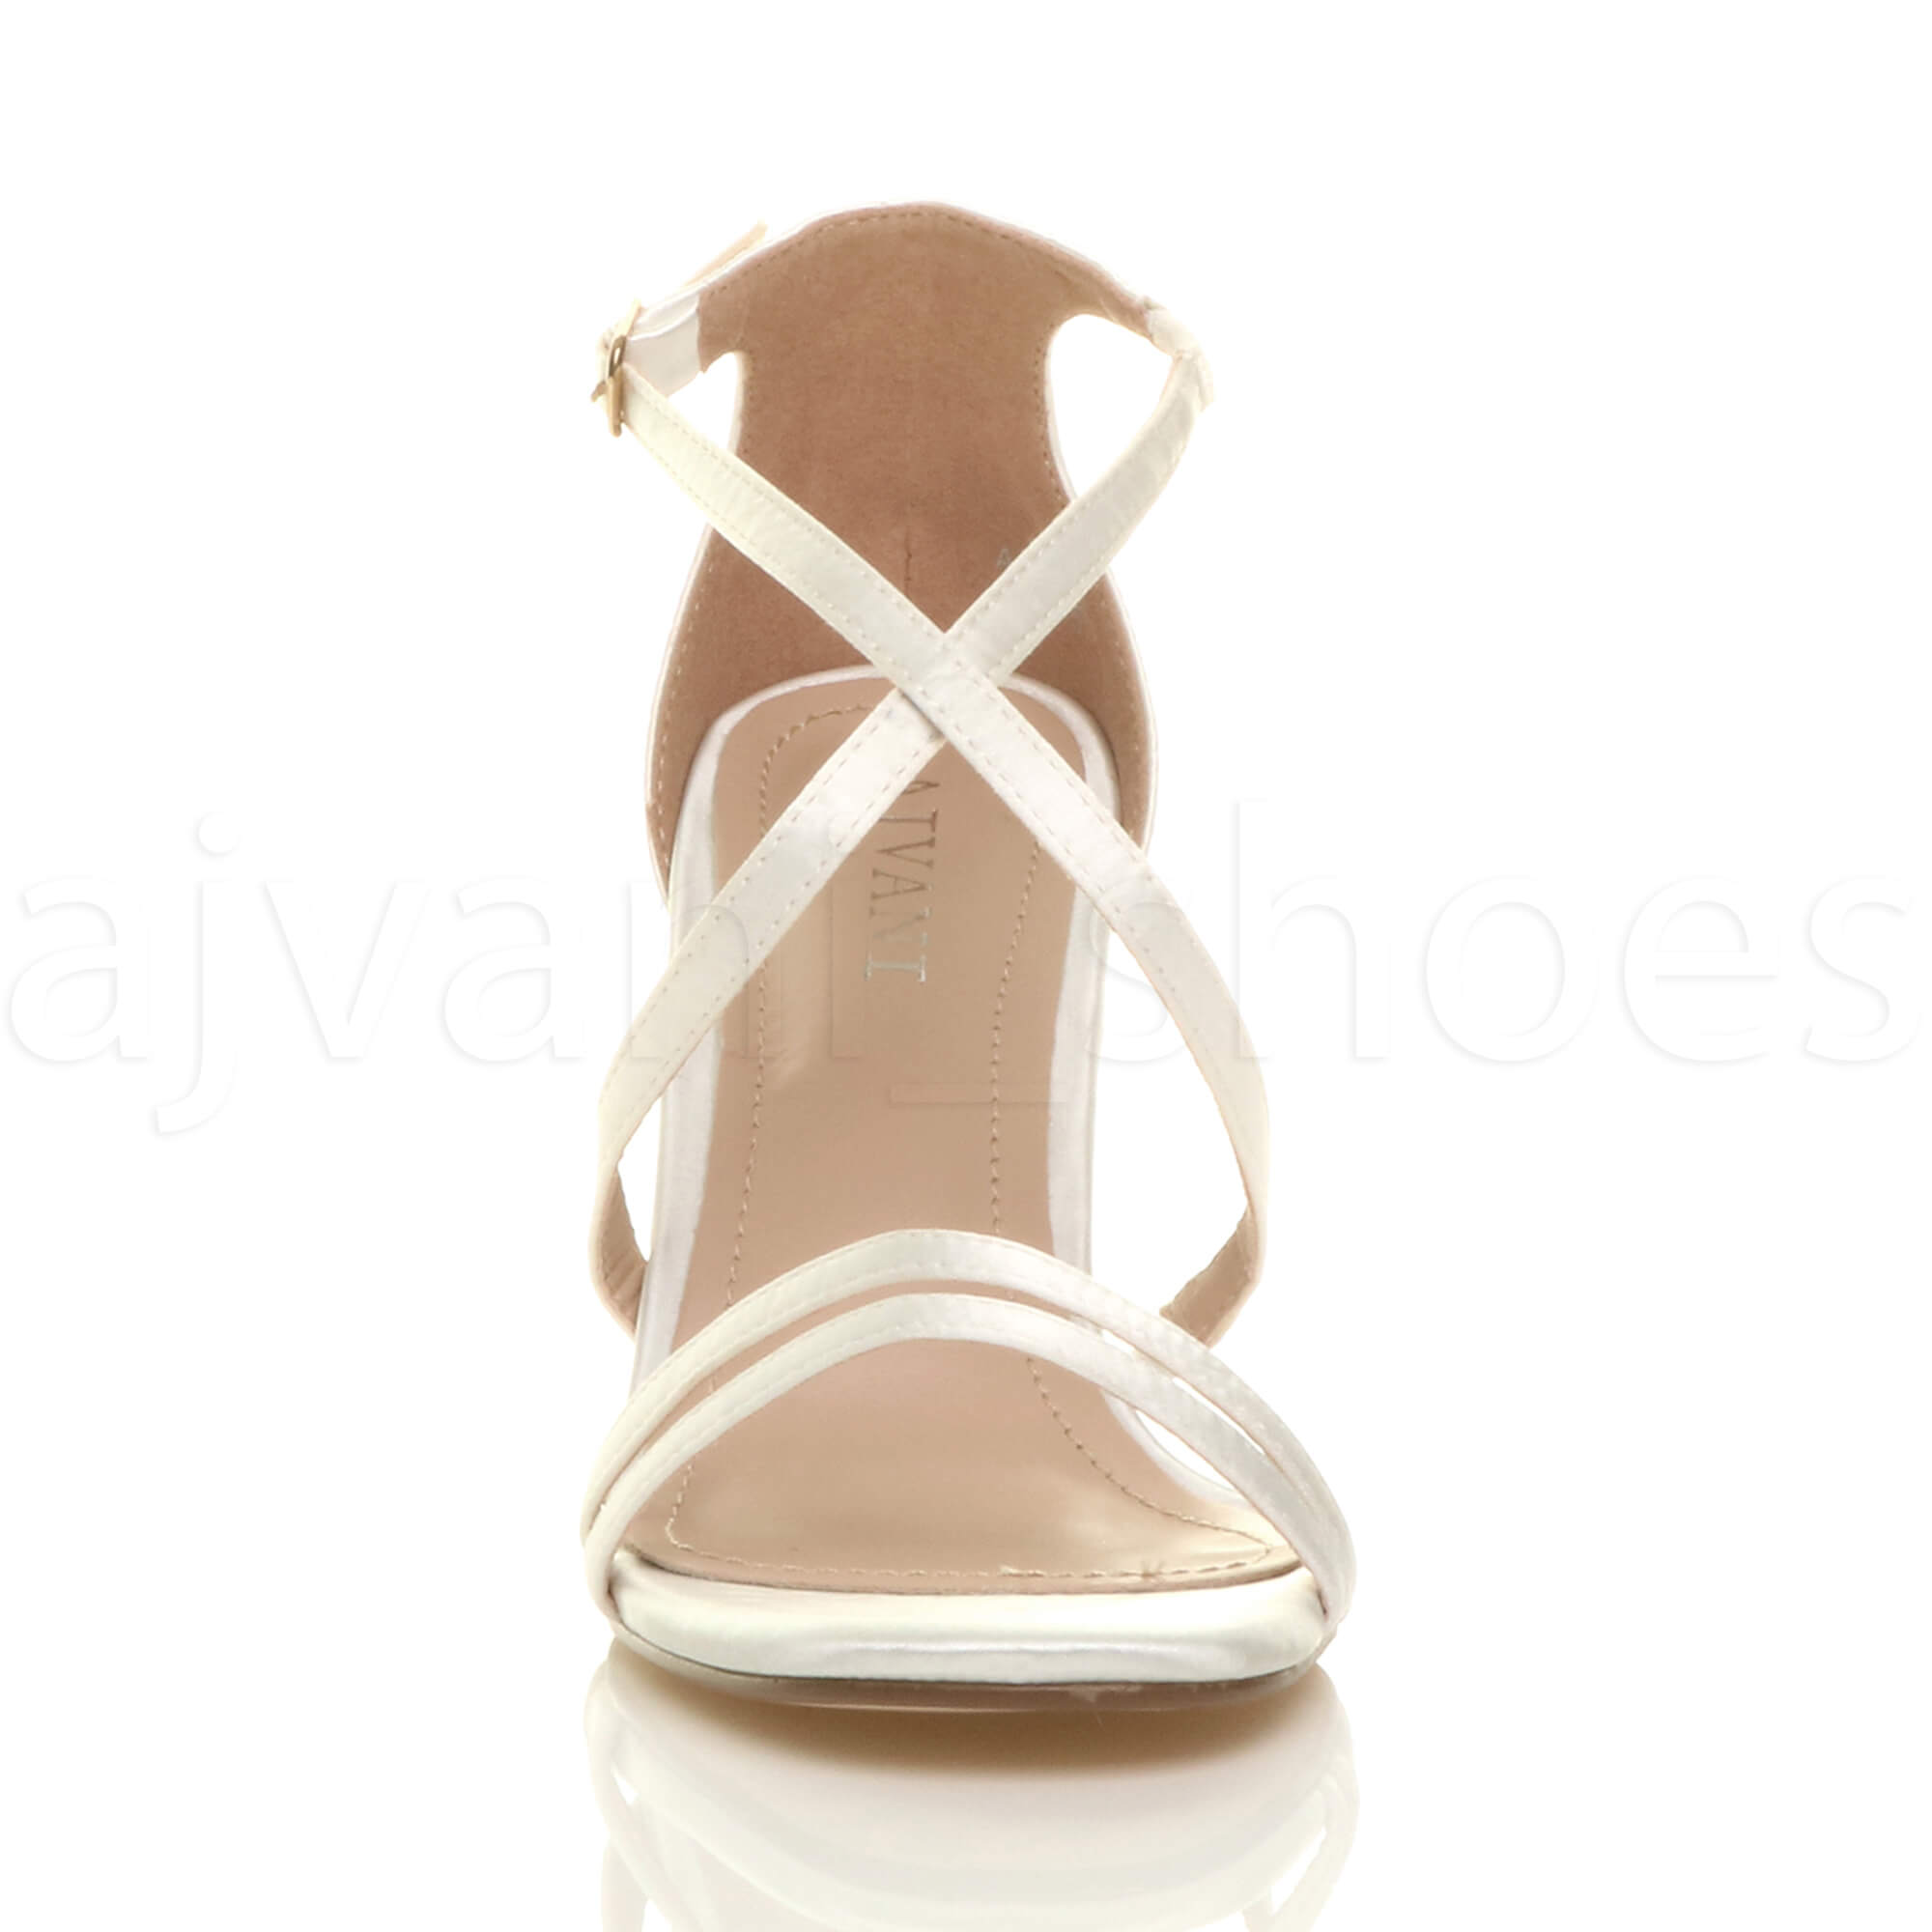 WOMENS-LADIES-MID-HIGH-HEEL-STRAPPY-CROSSOVER-WEDDING-PROM-SANDALS-SHOES-SIZE thumbnail 69